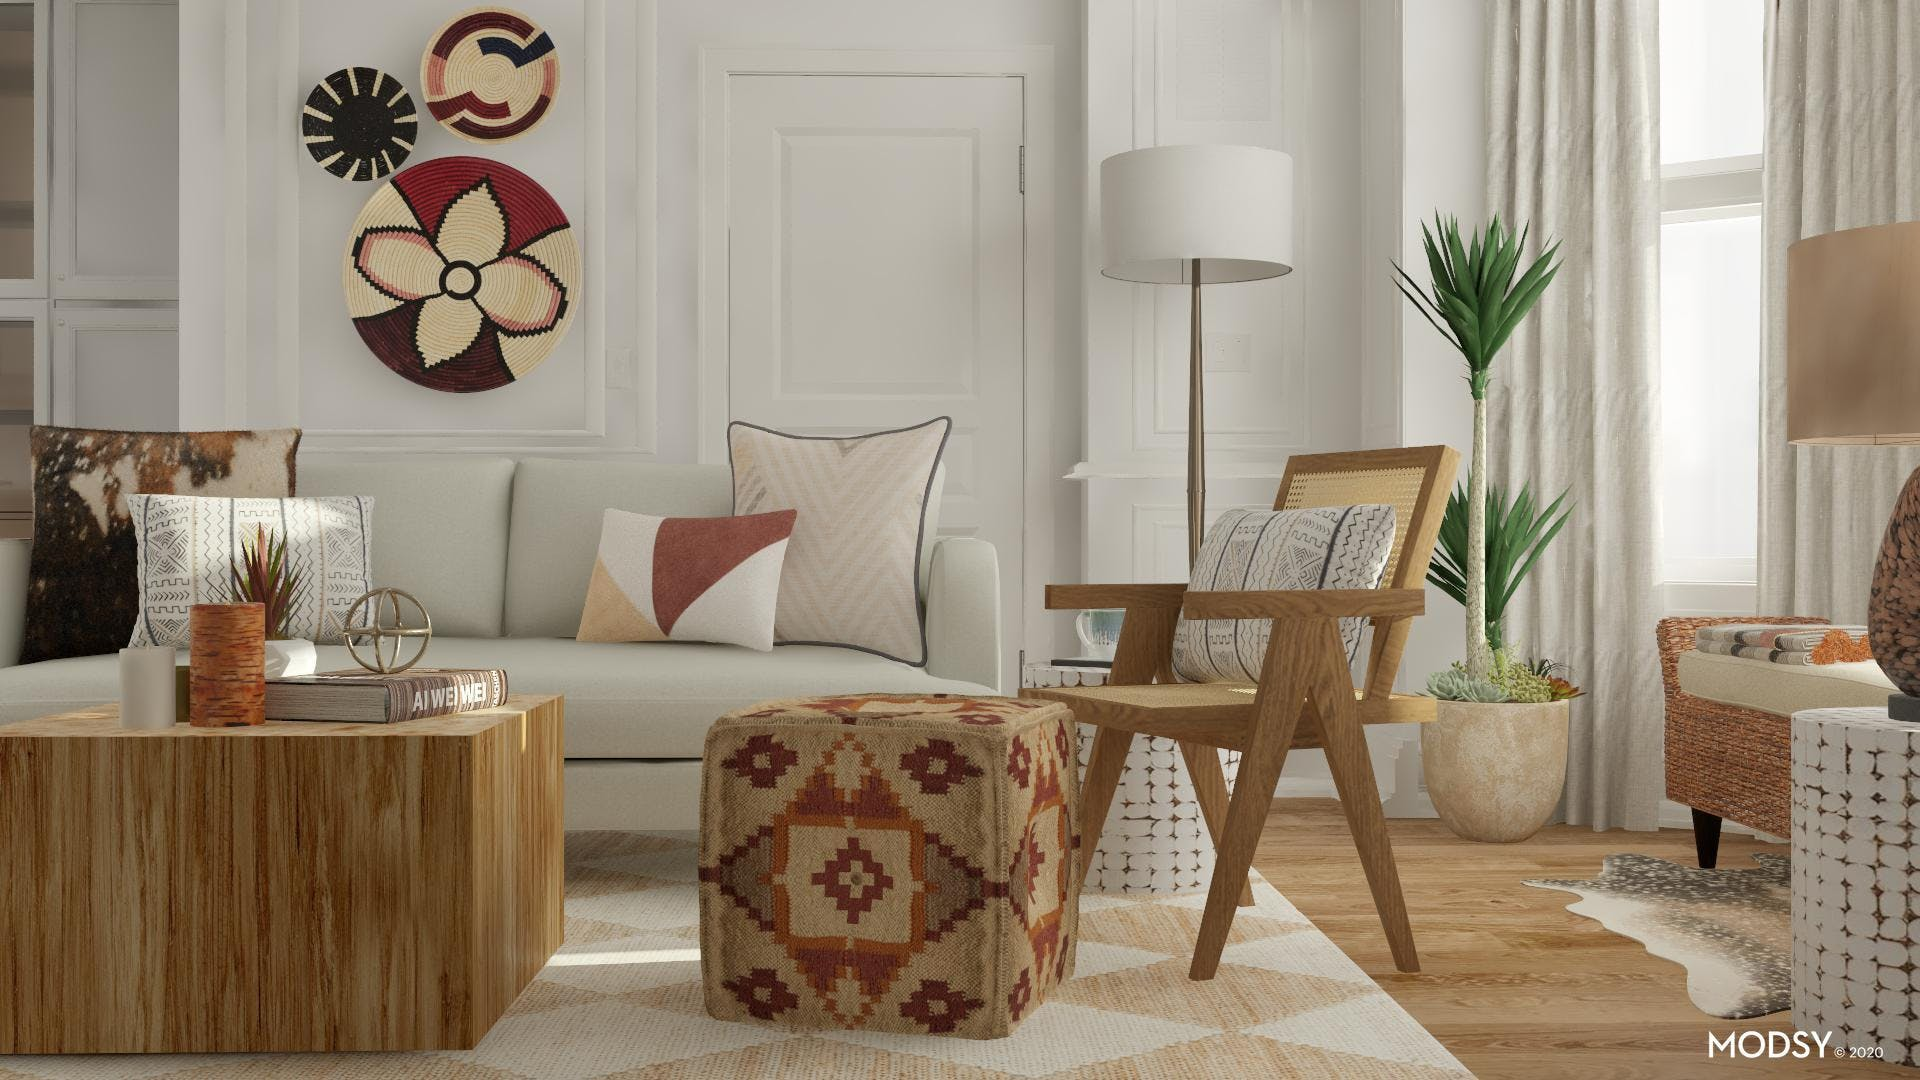 Eclectic Patterns Meet Earth-Toned Living